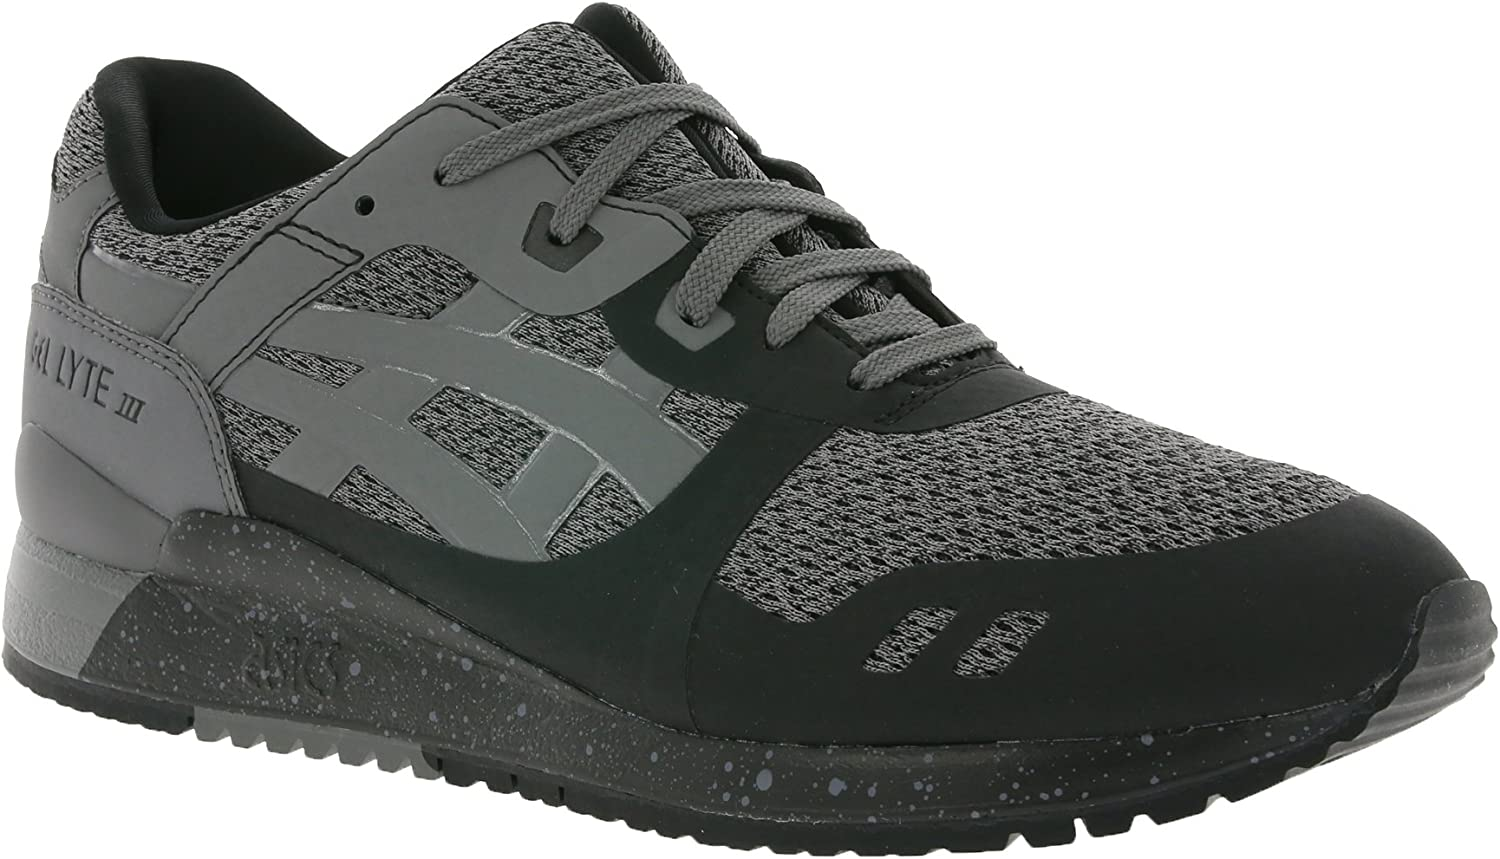 ASICS Men's Gel-Lyte Iii H715n-9097 Low-Top Sneakers